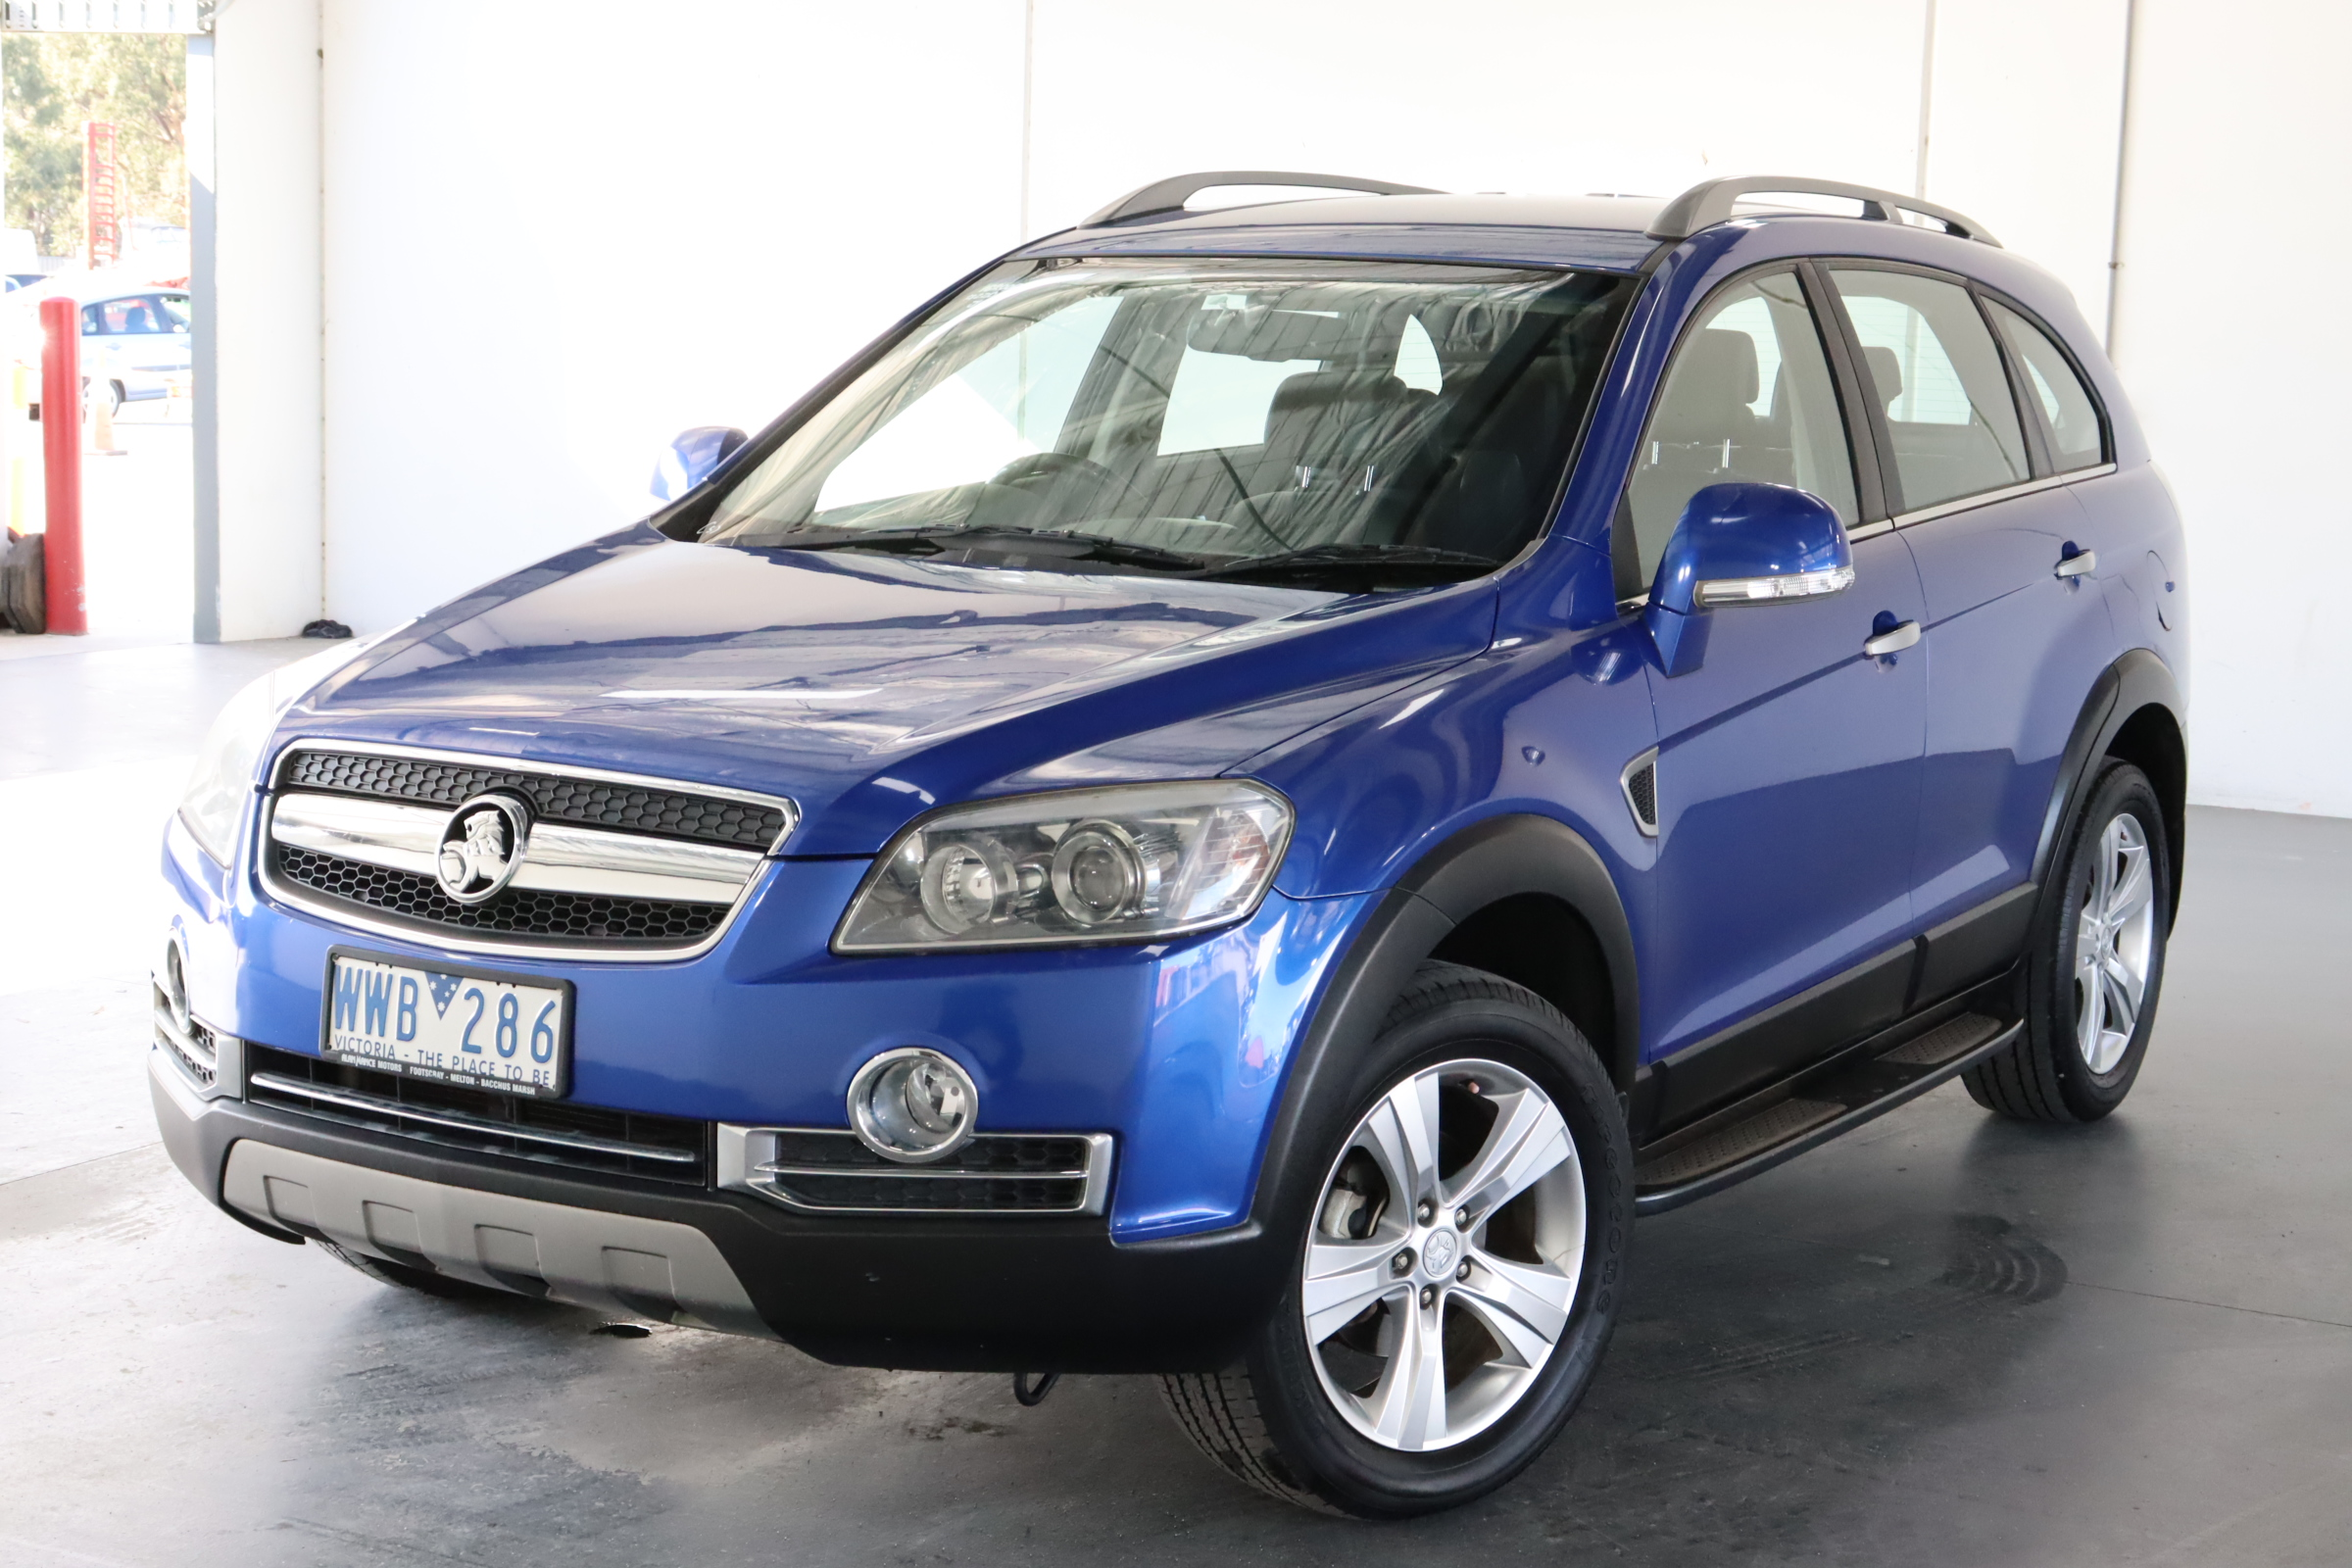 2008 Holden Captiva LX (4x4) CG Automatic 7 Seats Wagon